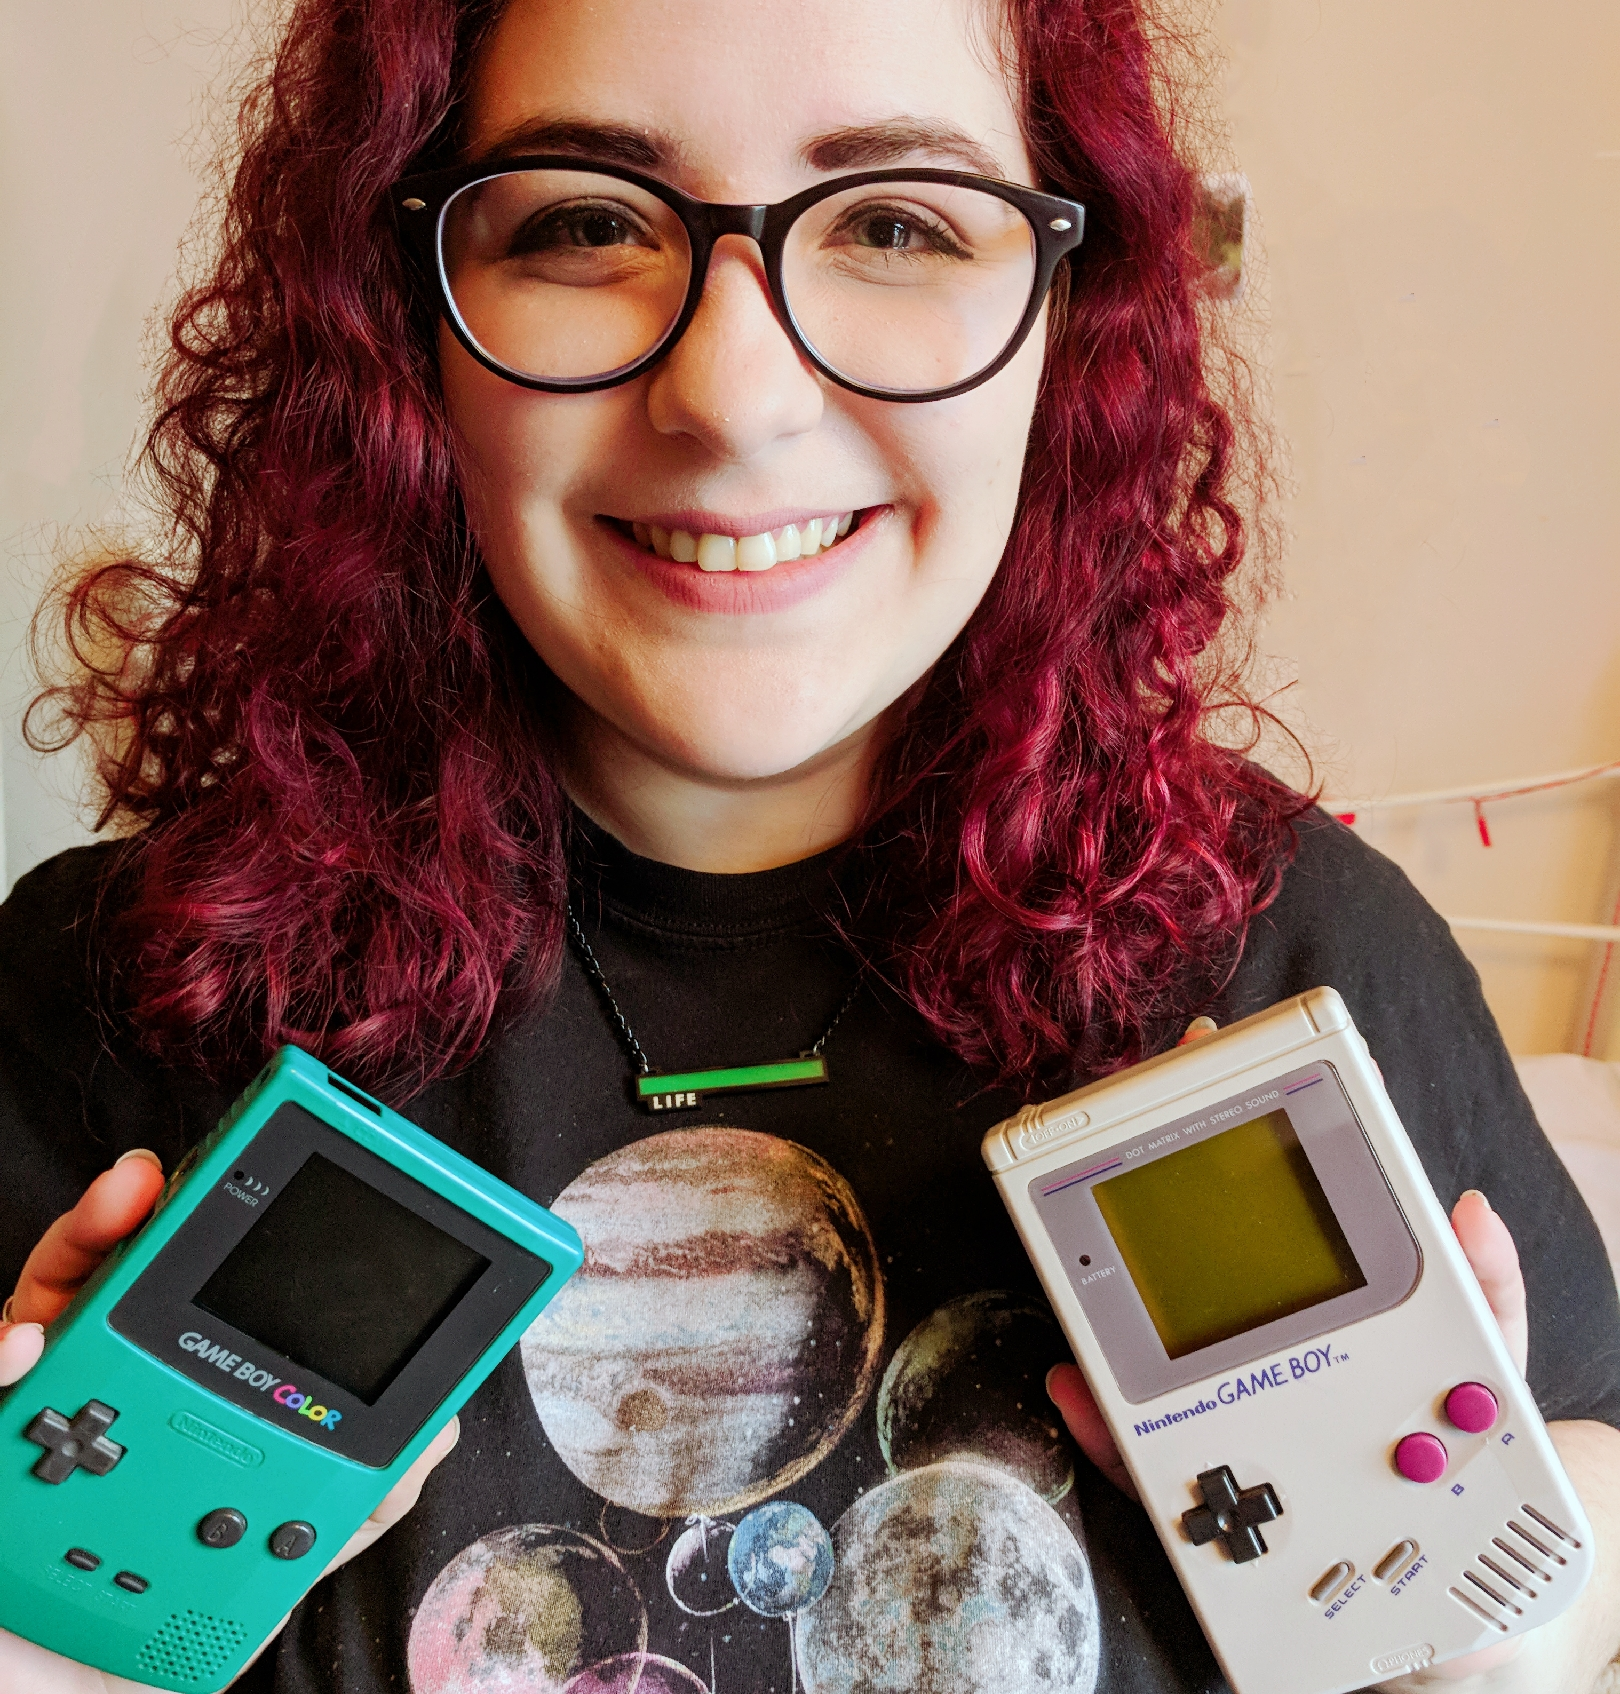 Celebrating 30 years of Life with the Game Boy - WritingIntoTheEther